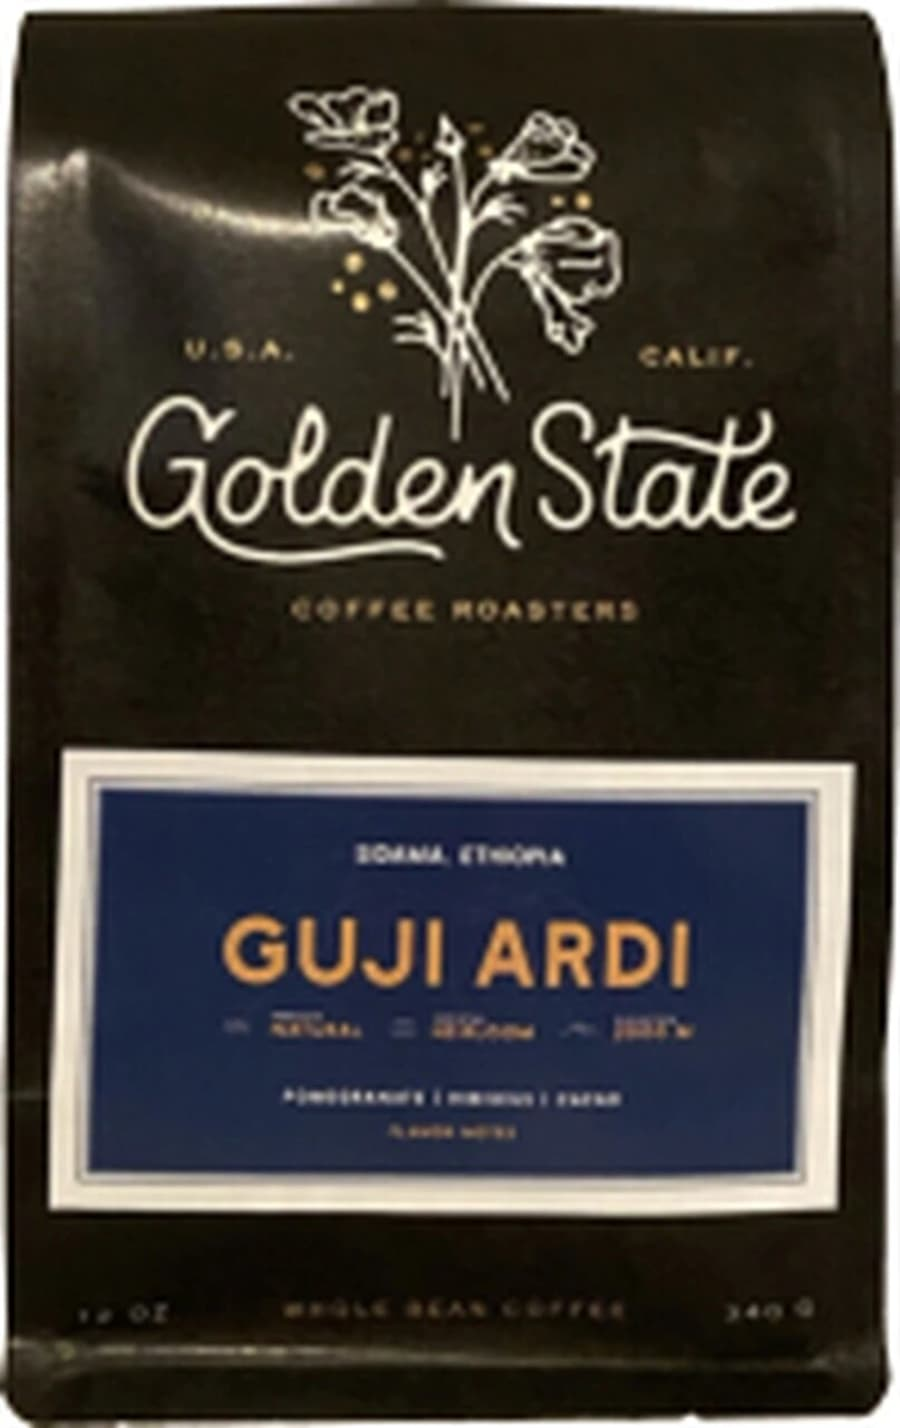 Guji Ardi | Golden State Coffee Roasters